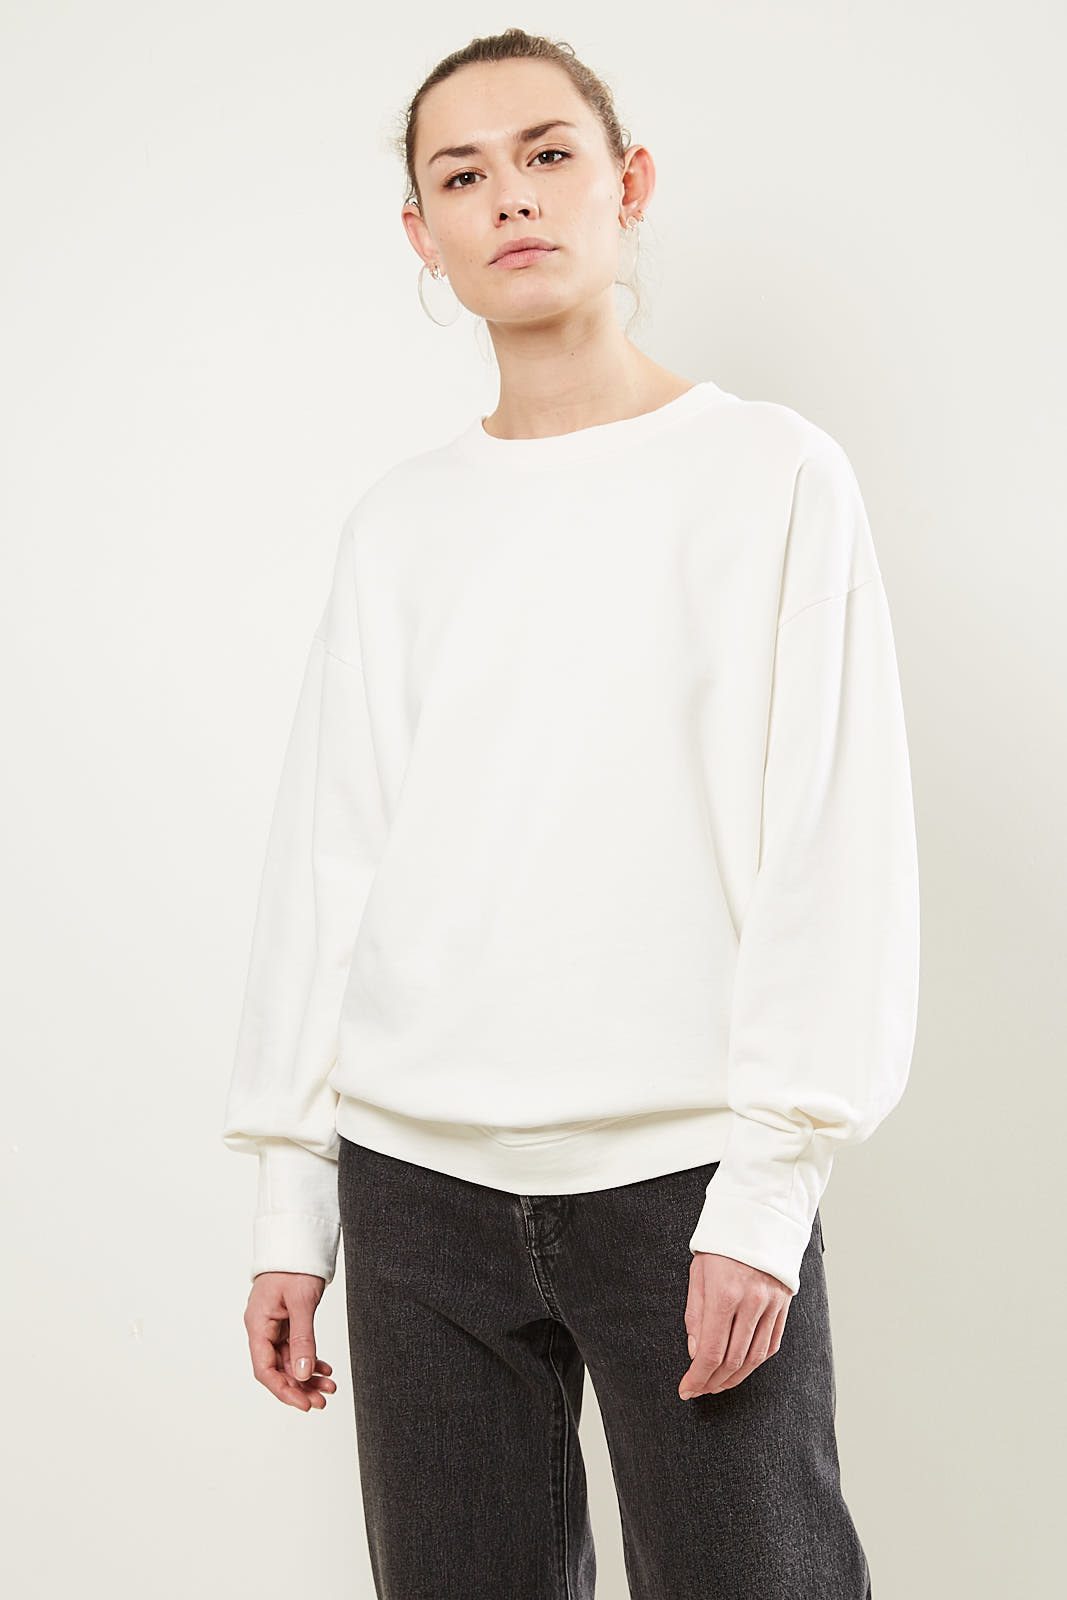 Humanoid Bodyl benett sweater